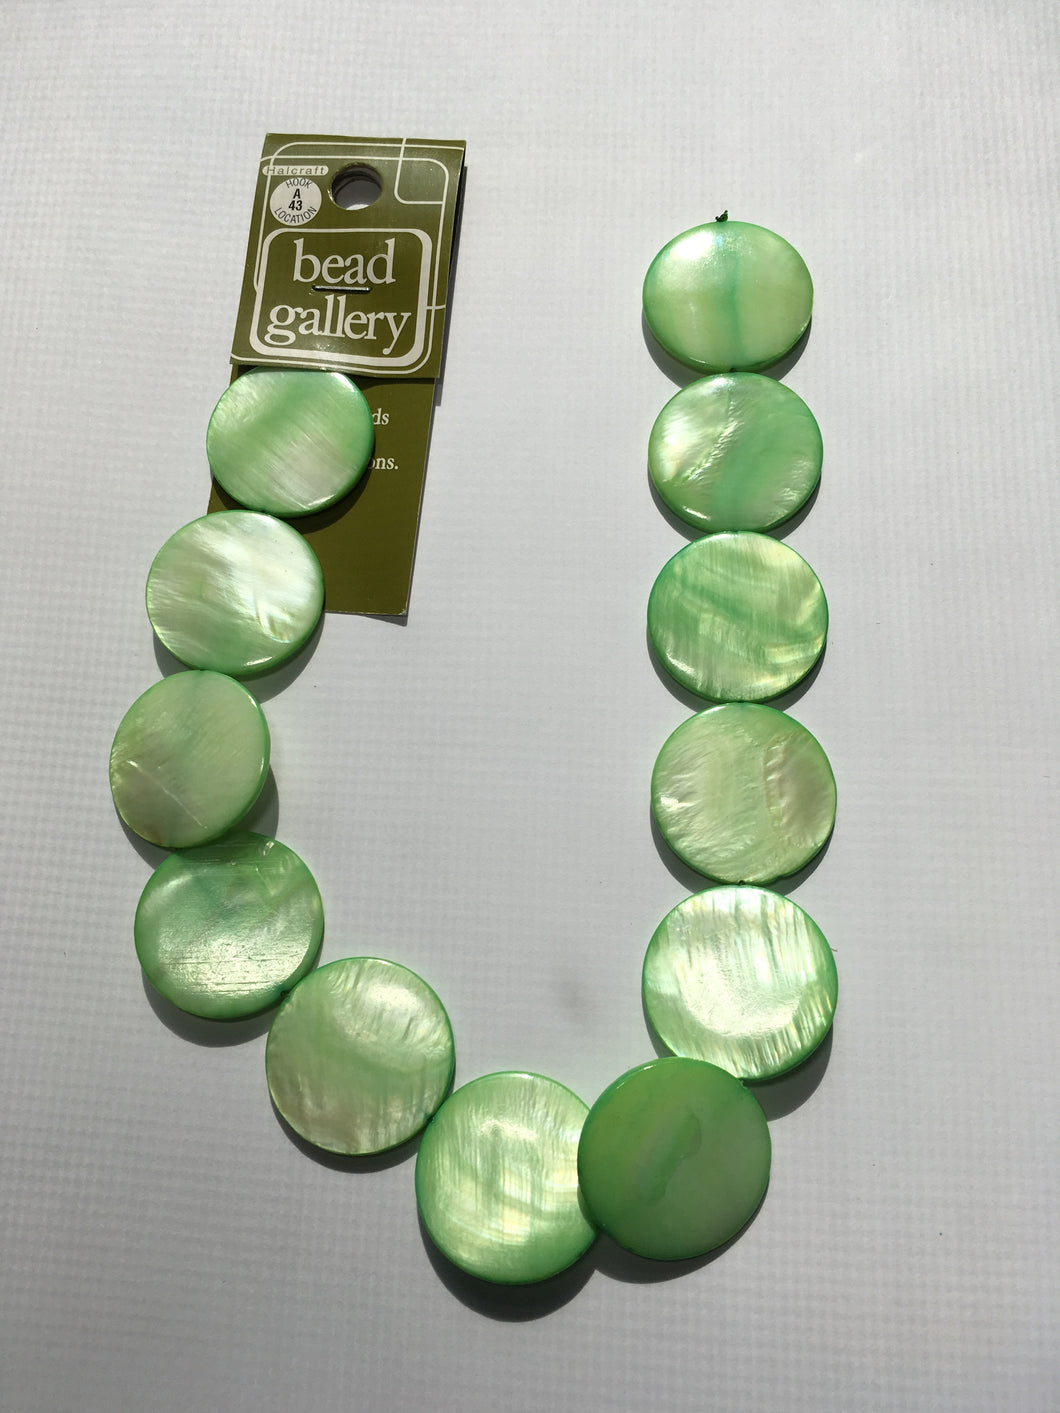 Bead Gallery Peridot Green Glass Lentil Beads, 25 mm, 12 Beads